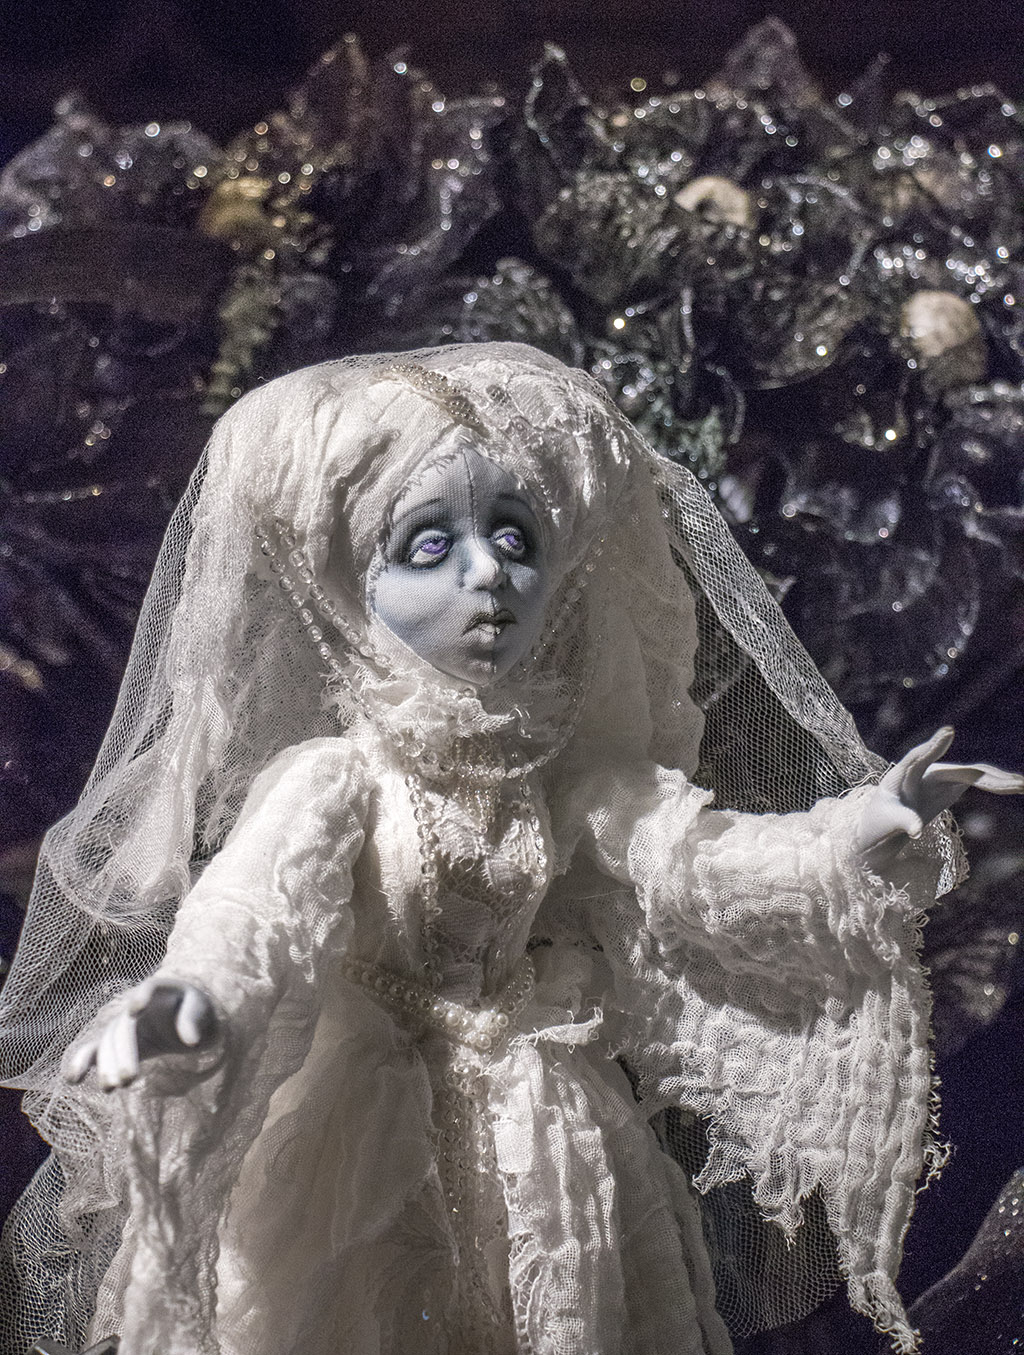 An image of a white bride decor for Halloween 2018